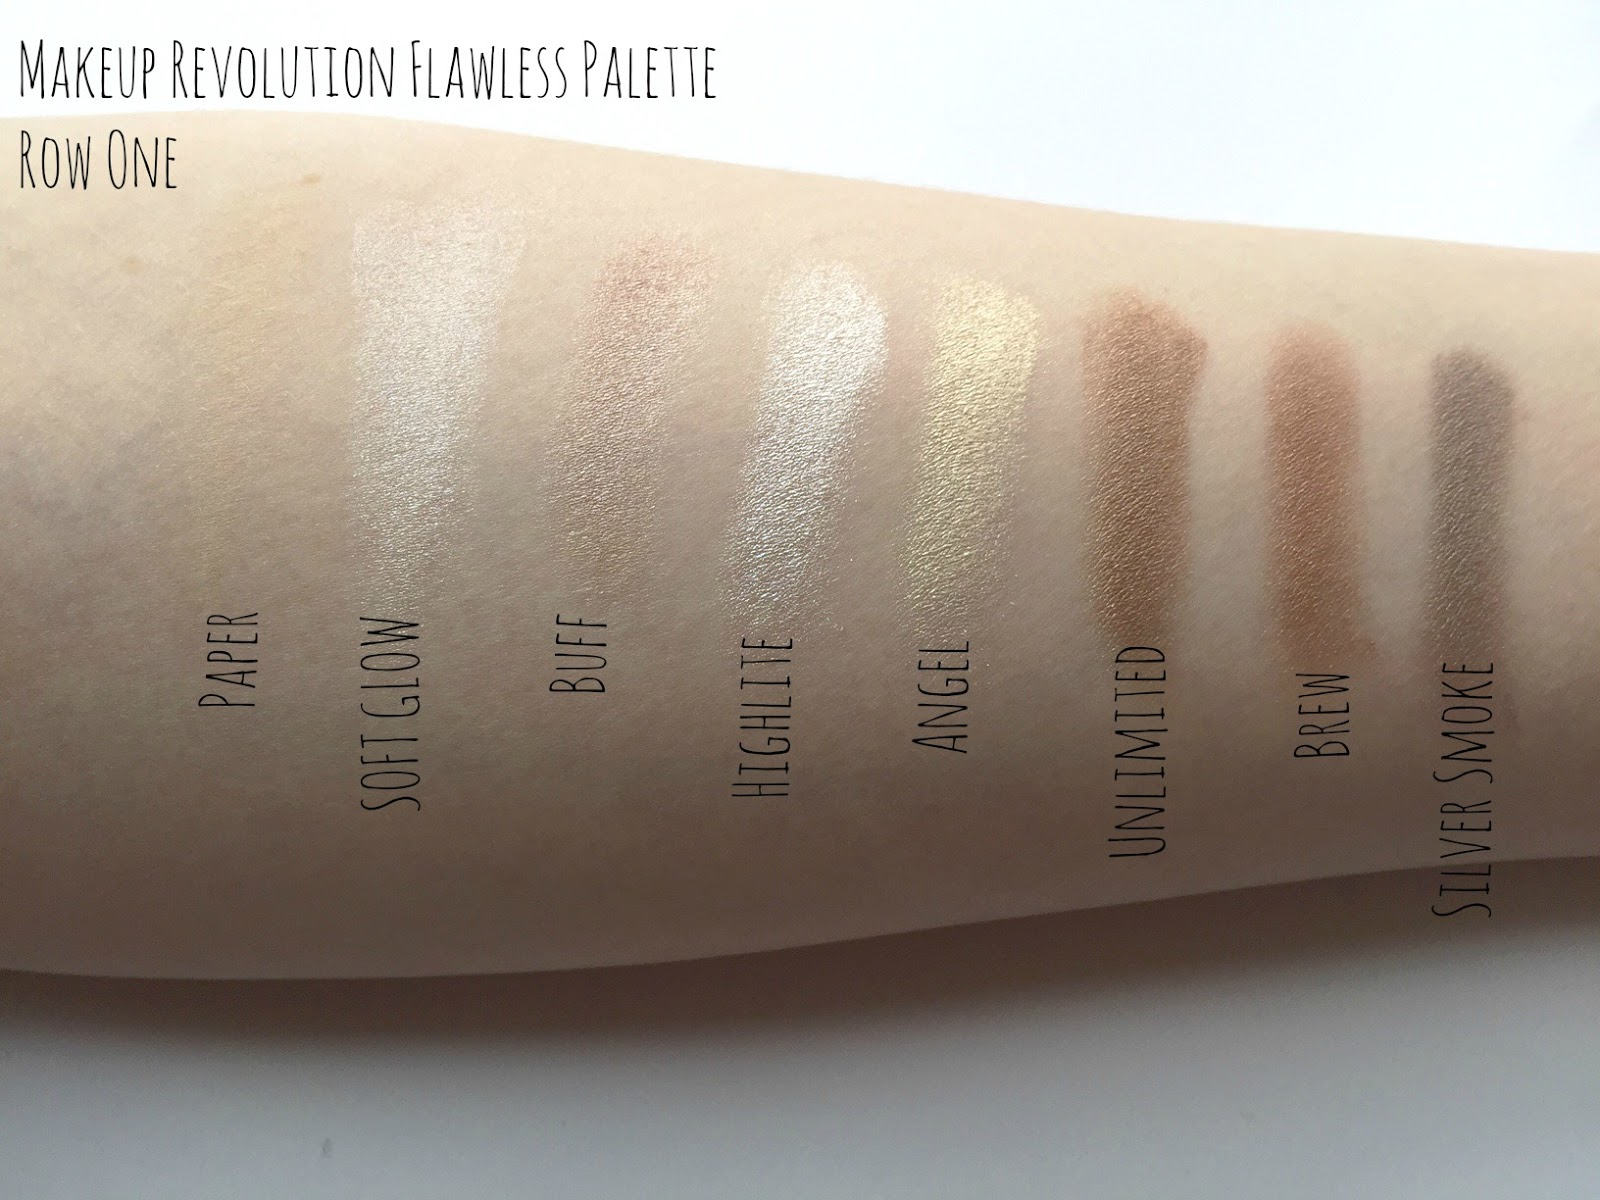 Makeup revolution foundation ingredients